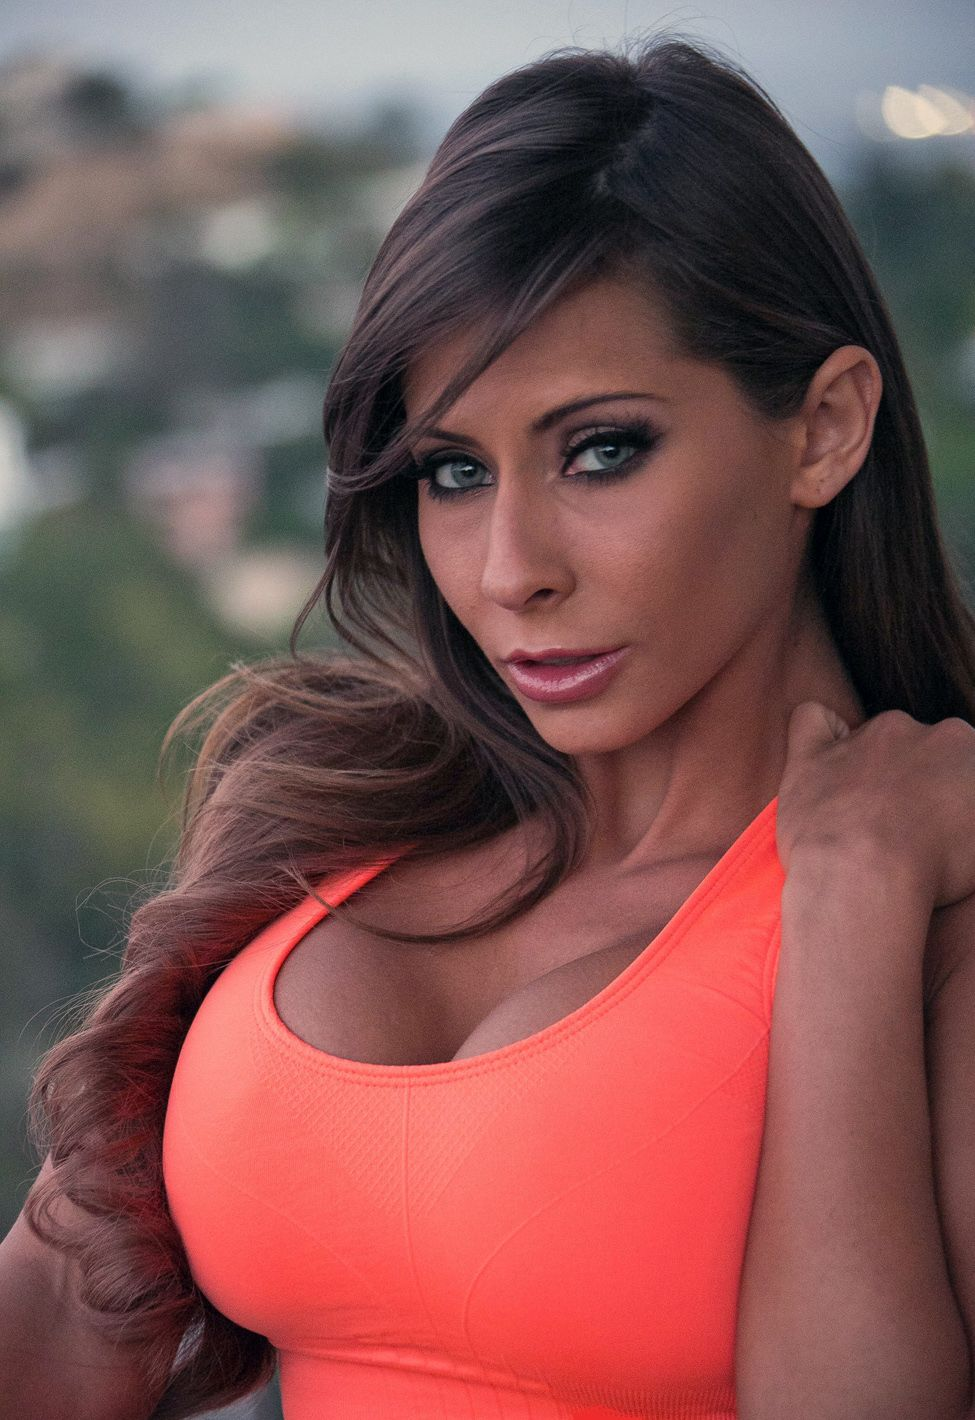 madison ivy in a top for the sport cleavage x madison ivy pinterest boobs brunettes and nice. Black Bedroom Furniture Sets. Home Design Ideas